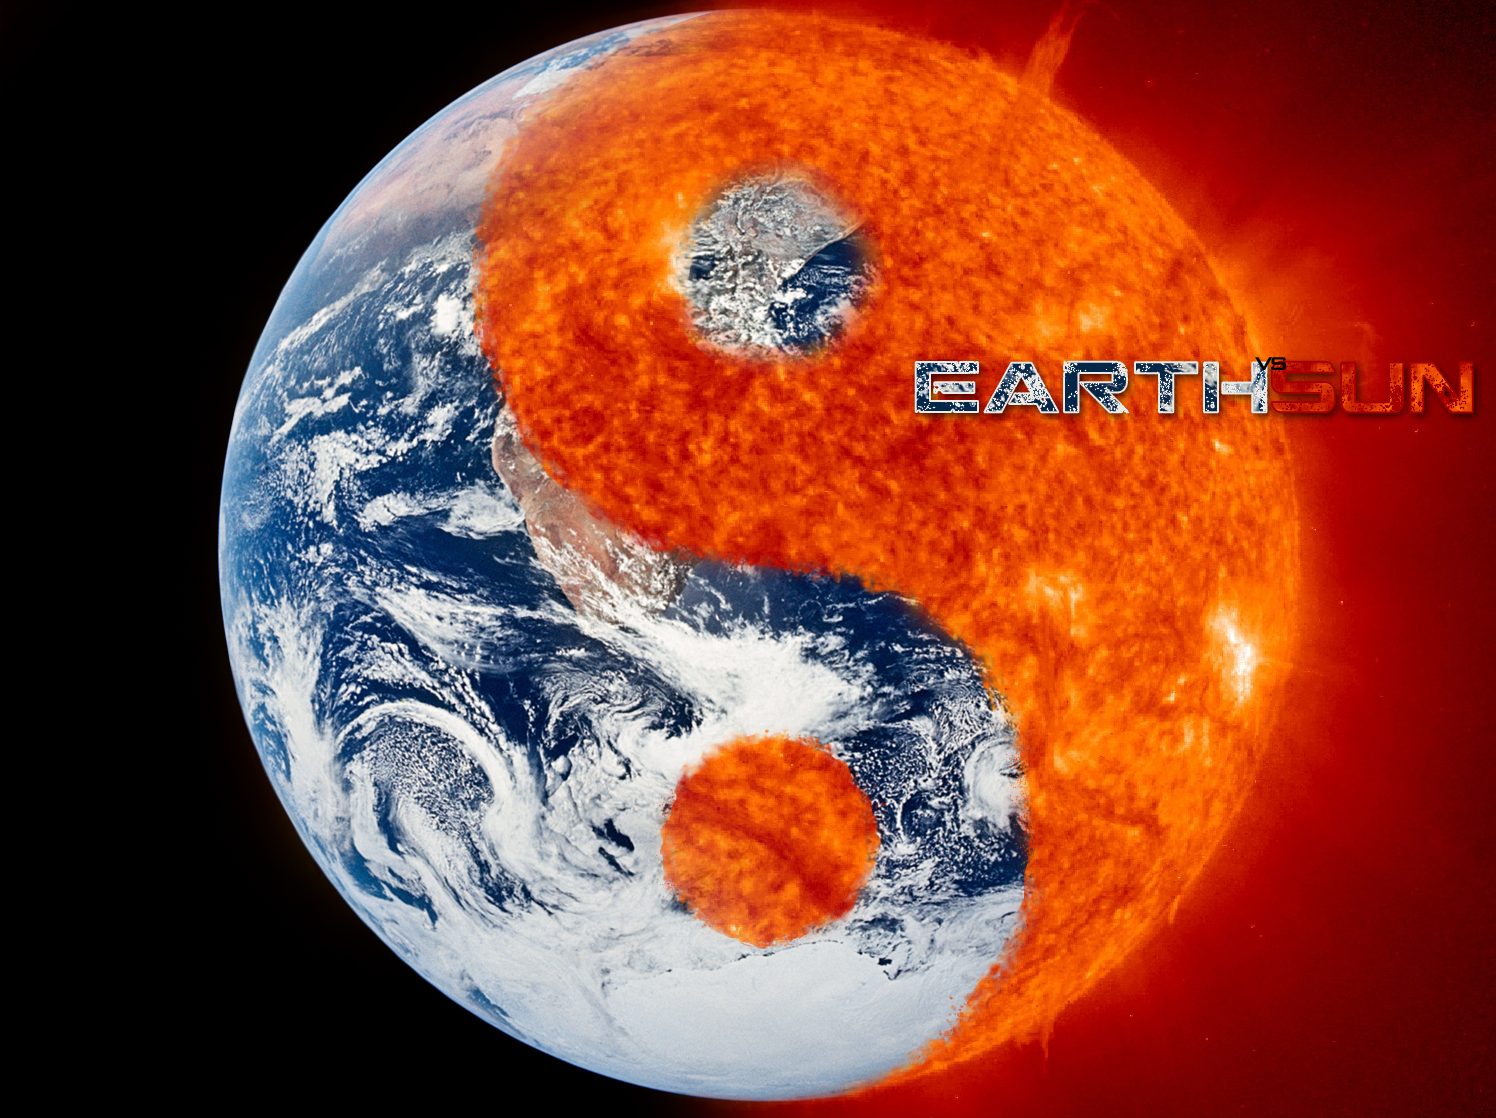 Celebrity Pictures Mak Mbut: Earth to Sun